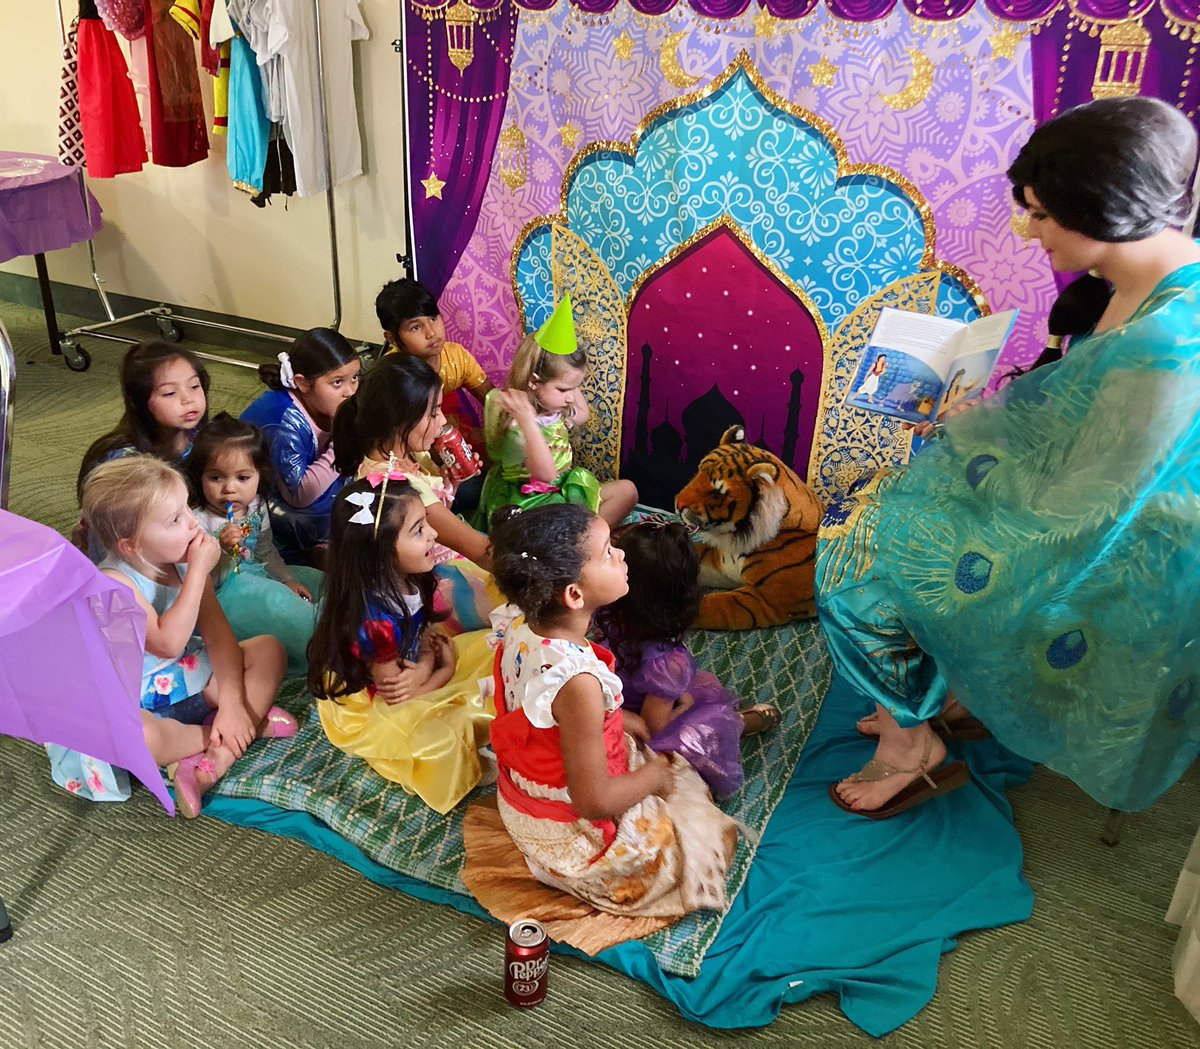 Gather around, my little jewels~! 💎 And I shall tell you a tale: full of magic, daring sword fights, even a prince in disguise! 🤴 📚 #arabianprincess #storytelling #party